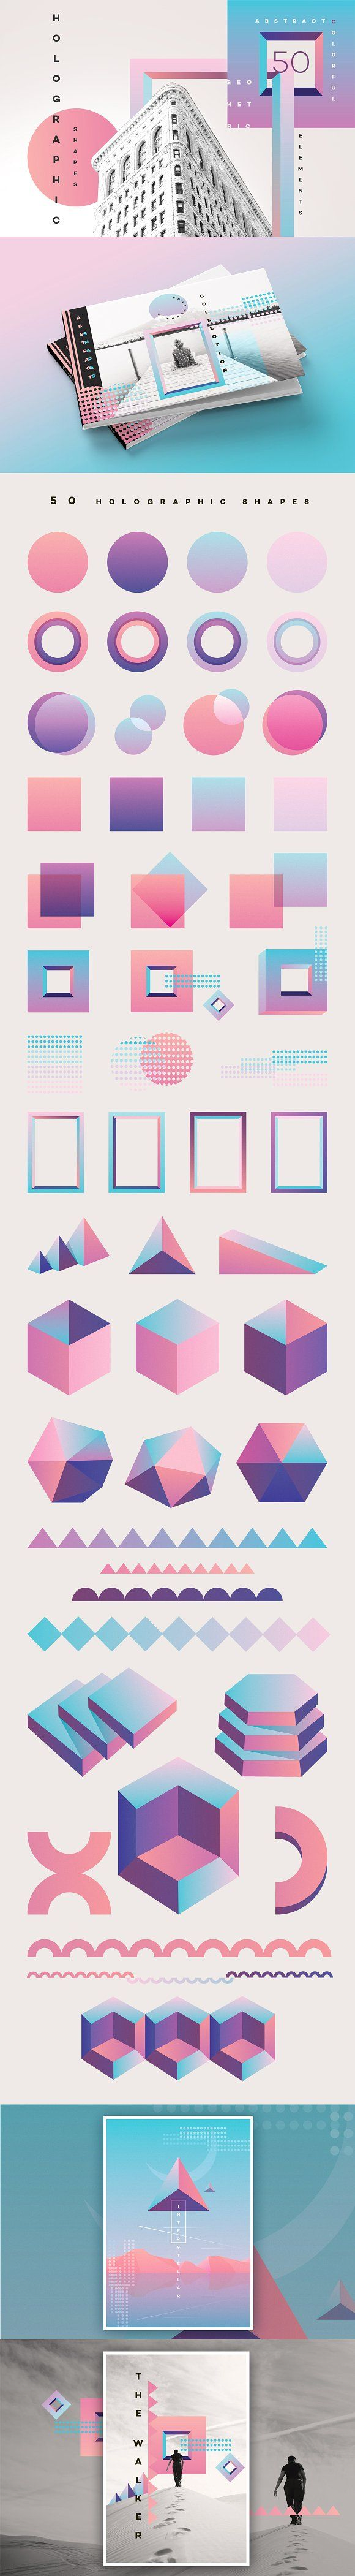 50 Holographic Shapes by Polar Vectors on @creativemarket